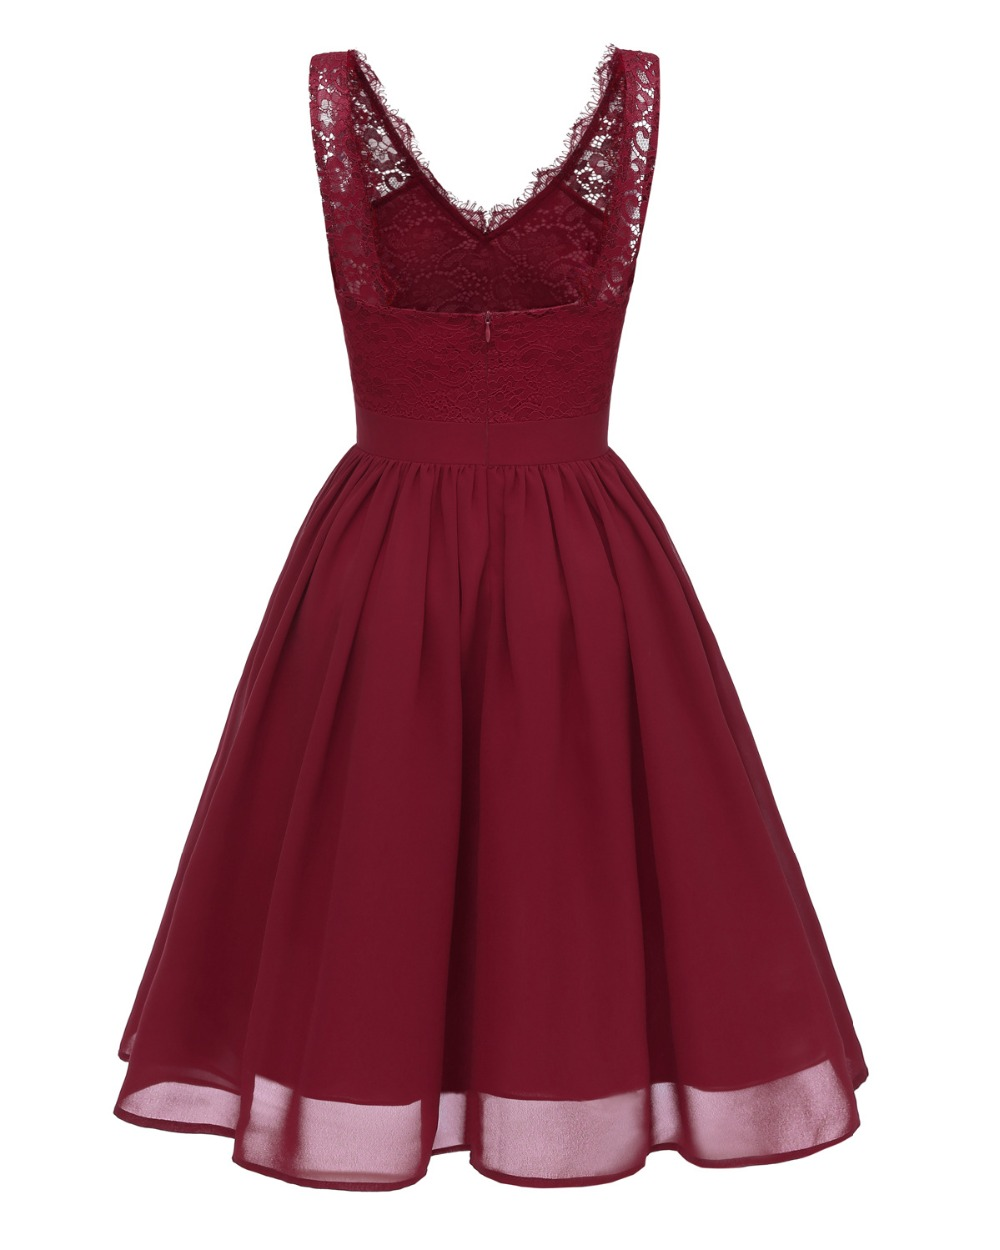 Women Sexy V Neck Floral Lace Chiffon Dresses Summer Backless Pink Burgundy Black Dress Rockabilly Vintage Party Dress in Dresses from Women 39 s Clothing